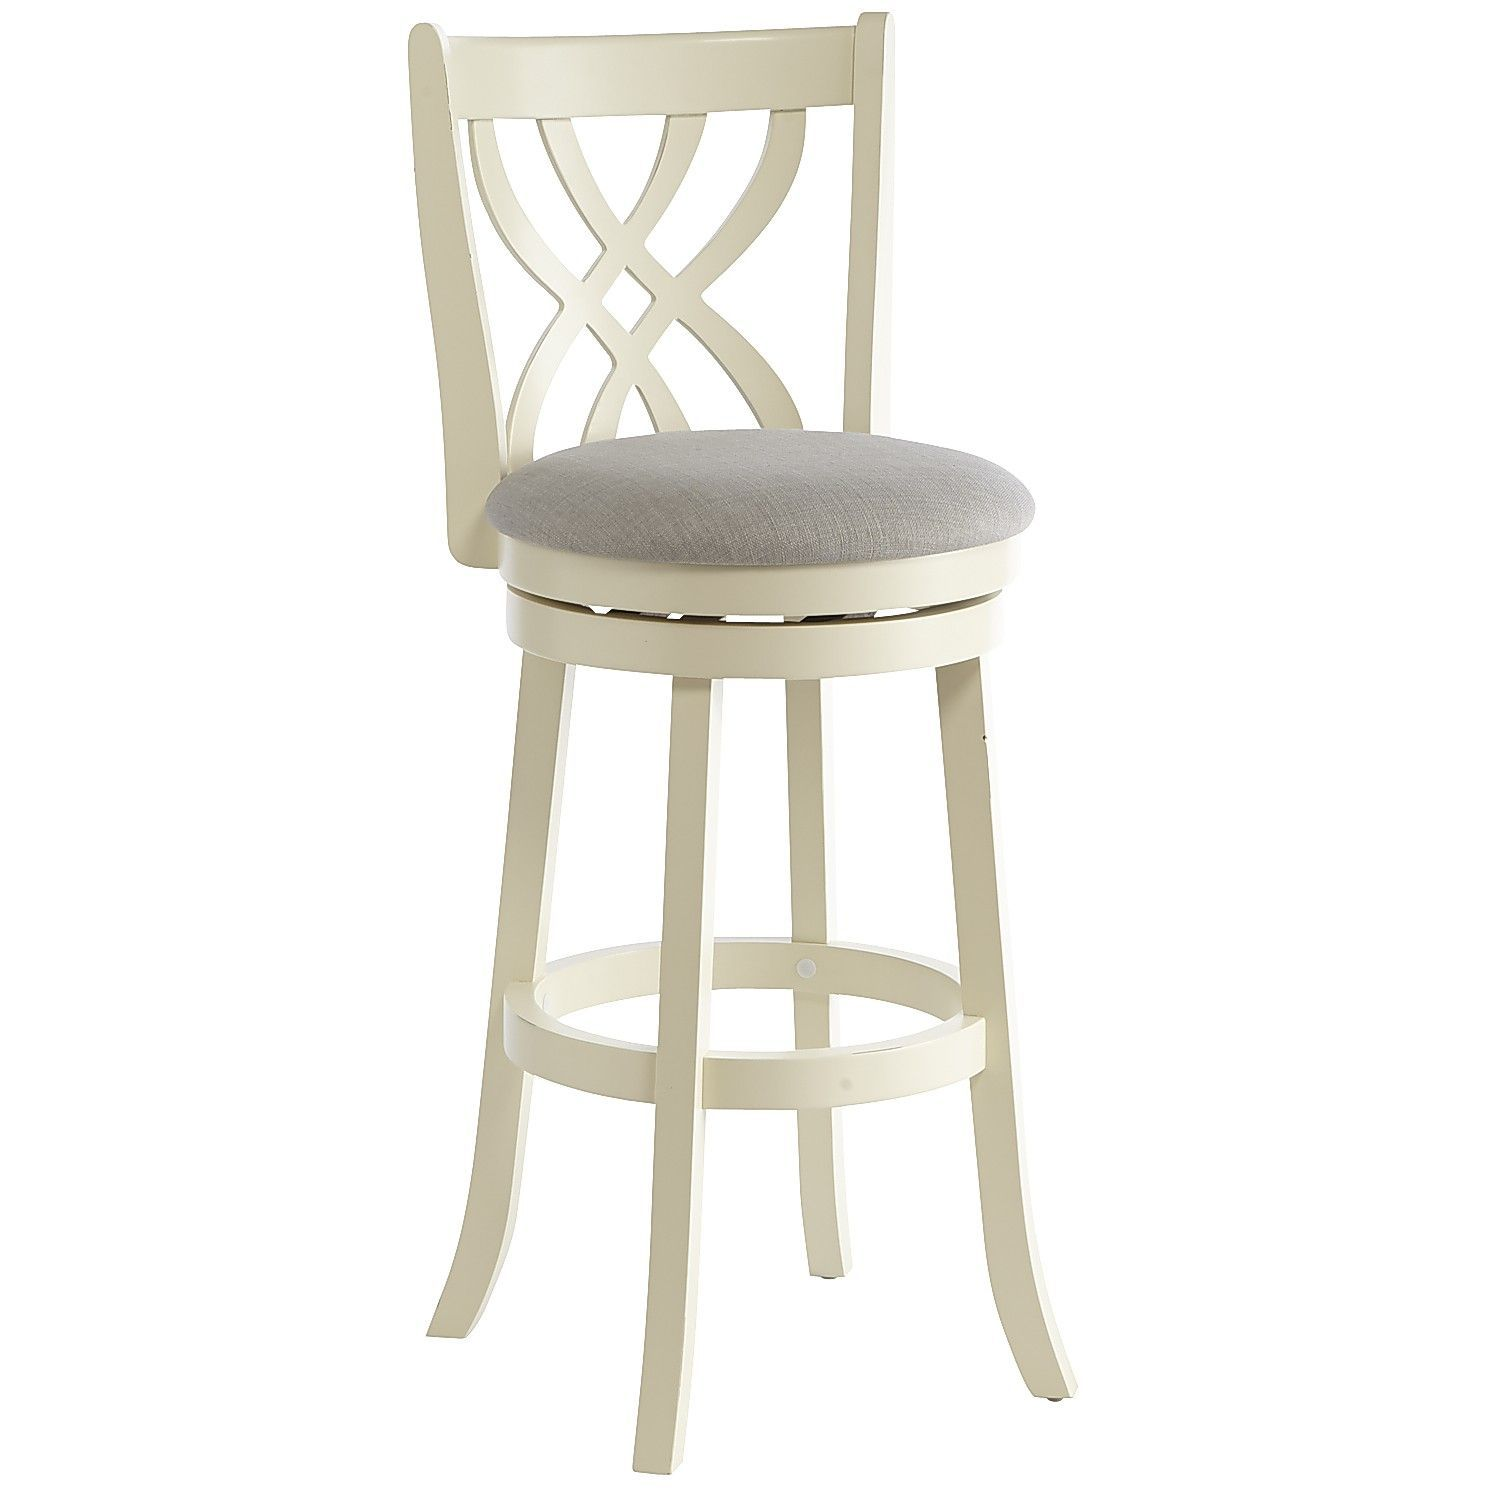 Cool Holbrook White Swivel Bar Stool Counter Bar Stools Swivel Gmtry Best Dining Table And Chair Ideas Images Gmtryco